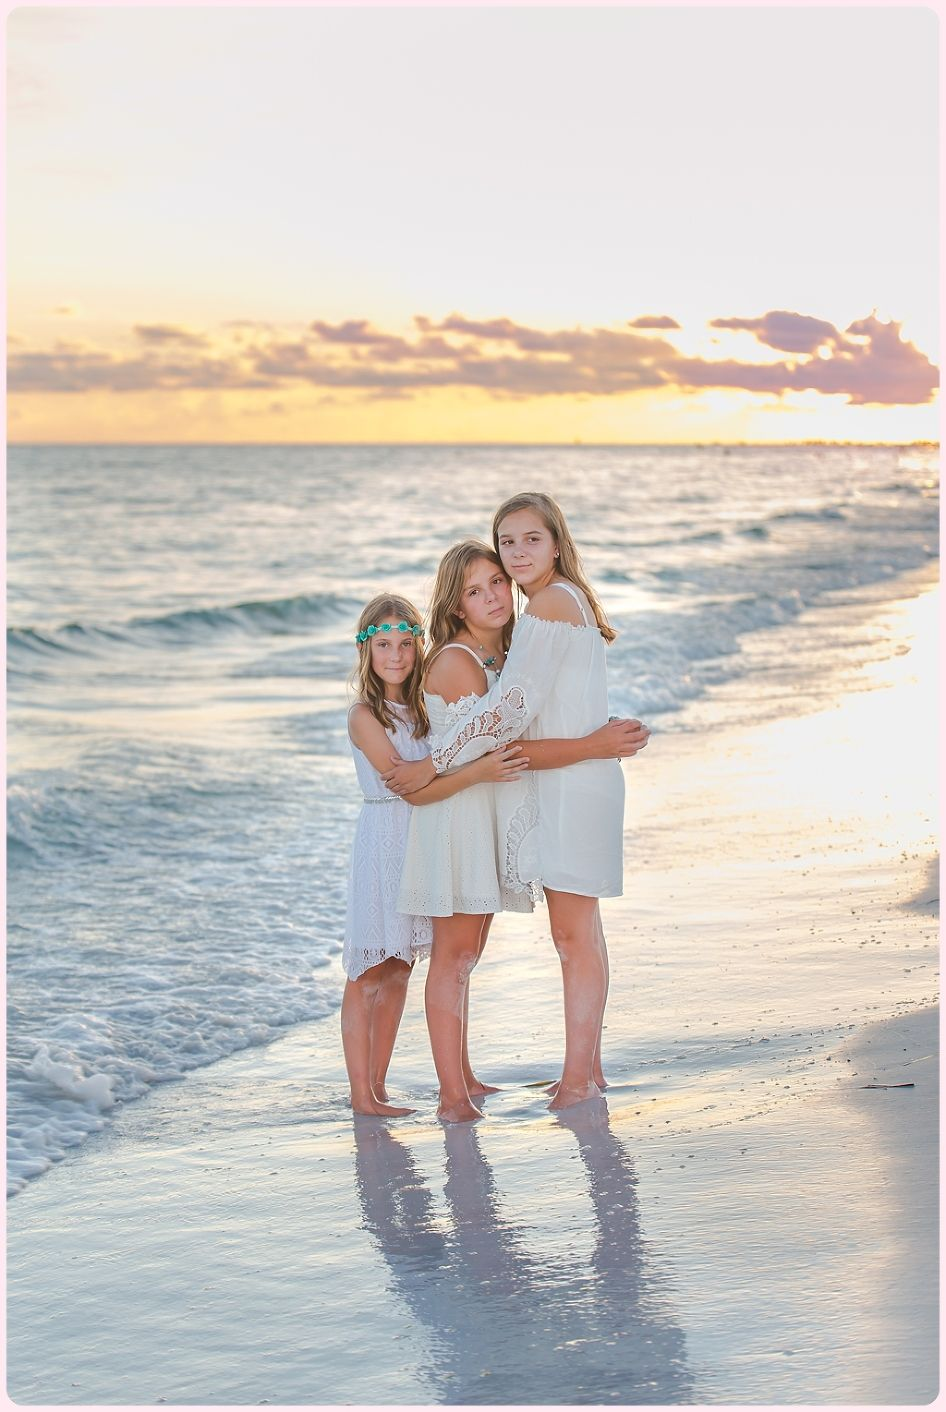 Sunset beach session at Siesta Key by Sarasota portrait photographer www.ristainophotography.com